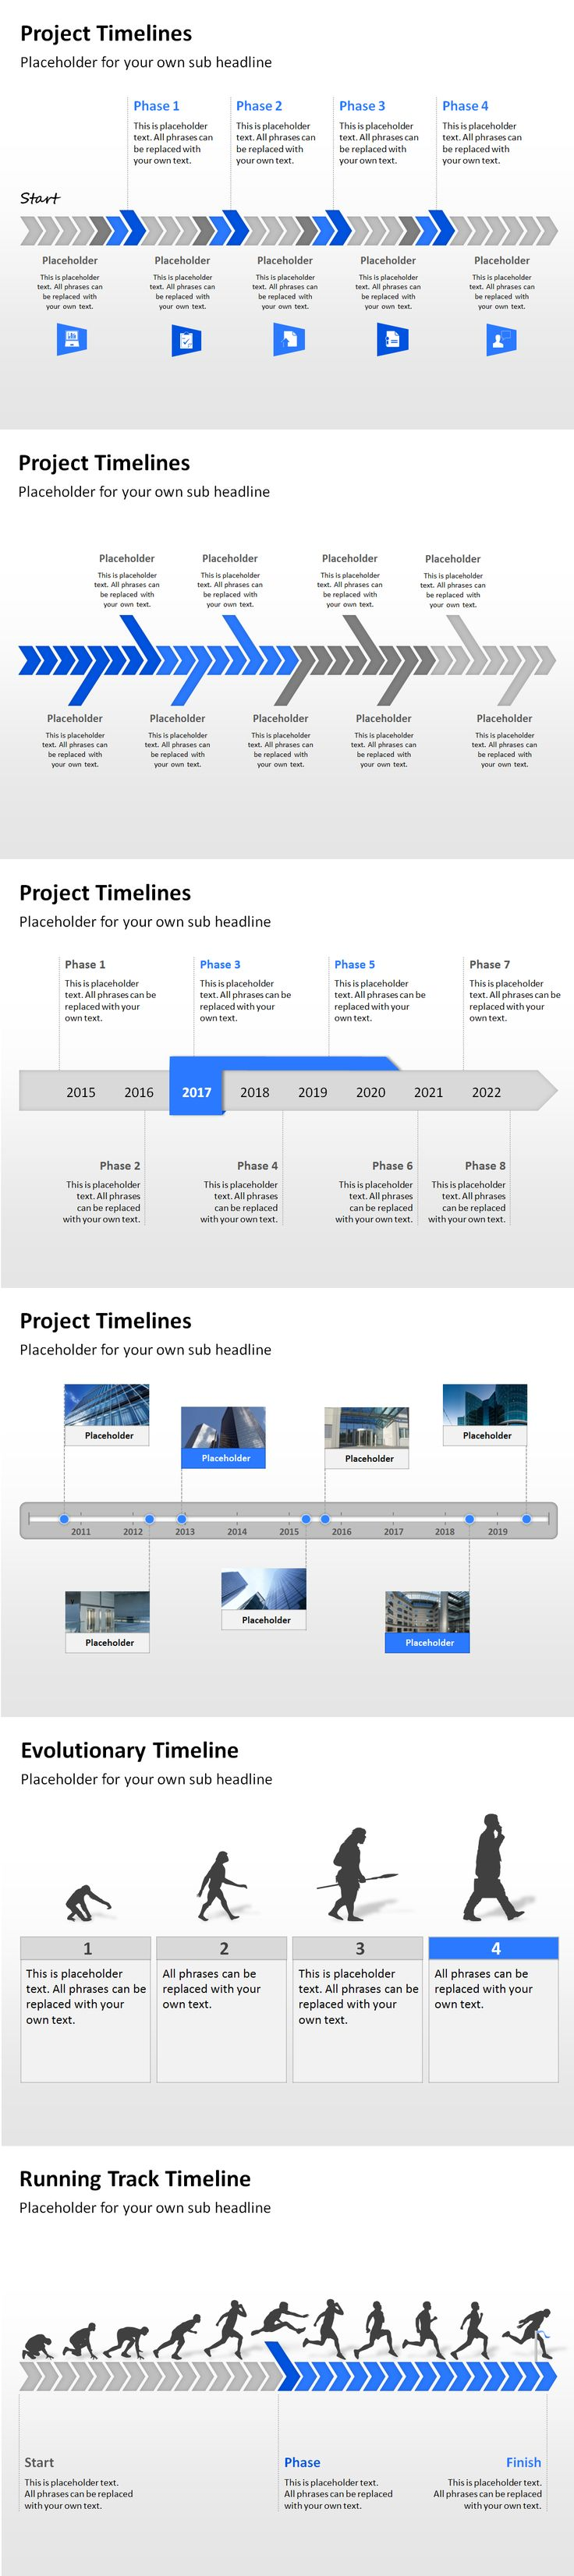 Project timeline templates to display planning, operation and development steps in a PowerPoint presentation